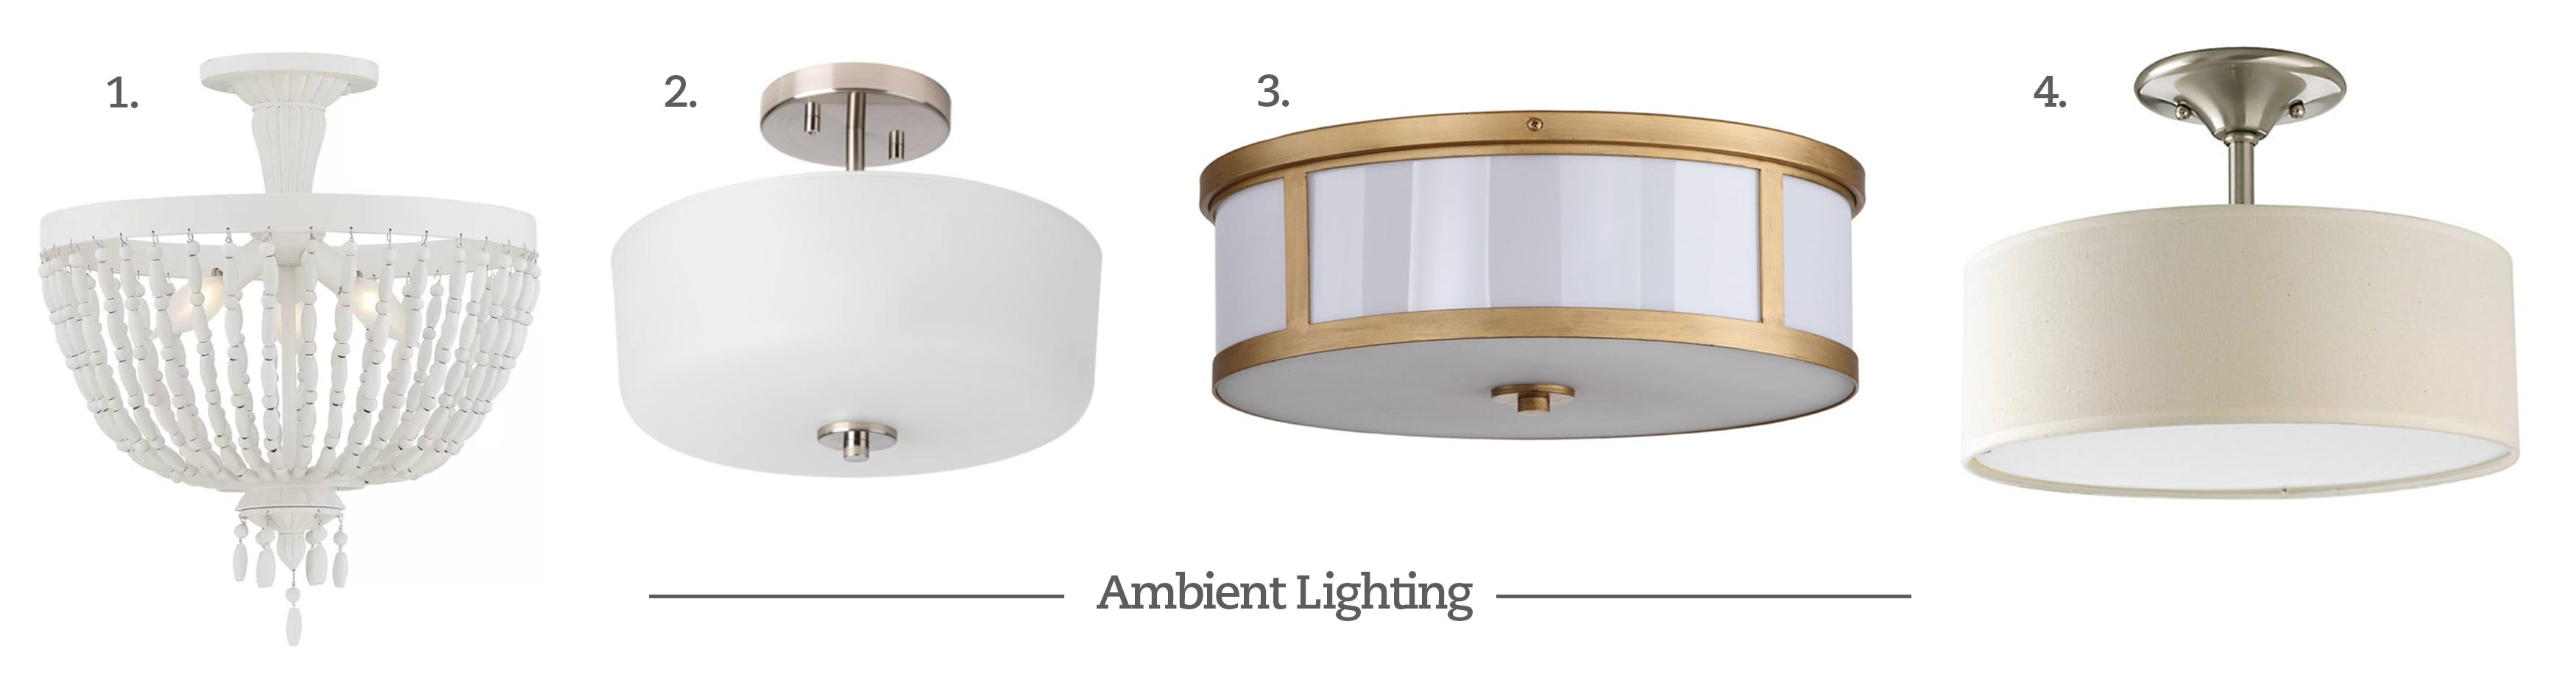 Ambient Lighting Options